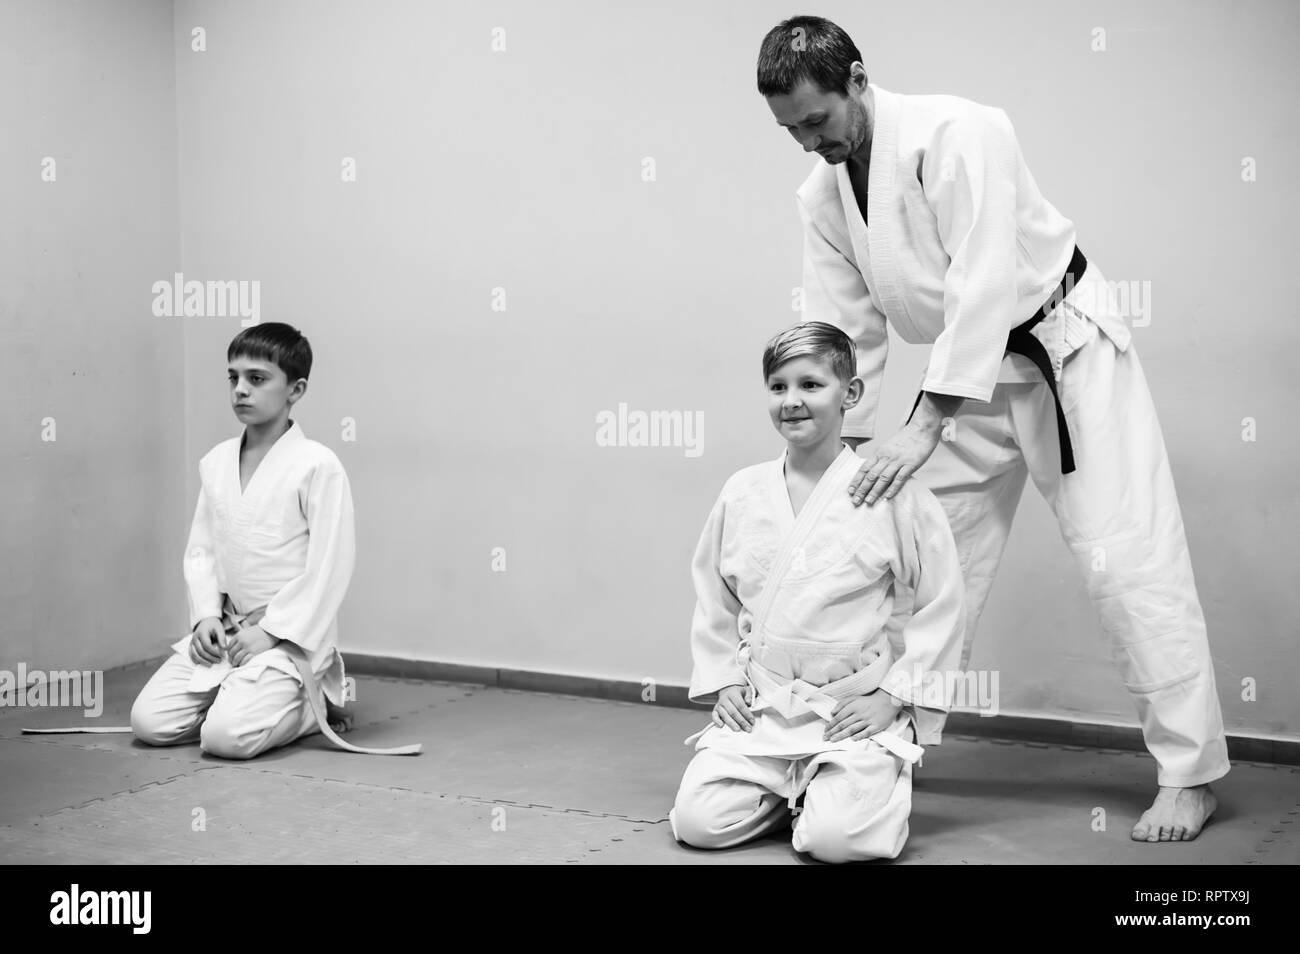 Aikido Japanese Black and White Stock Photos & Images - Alamy